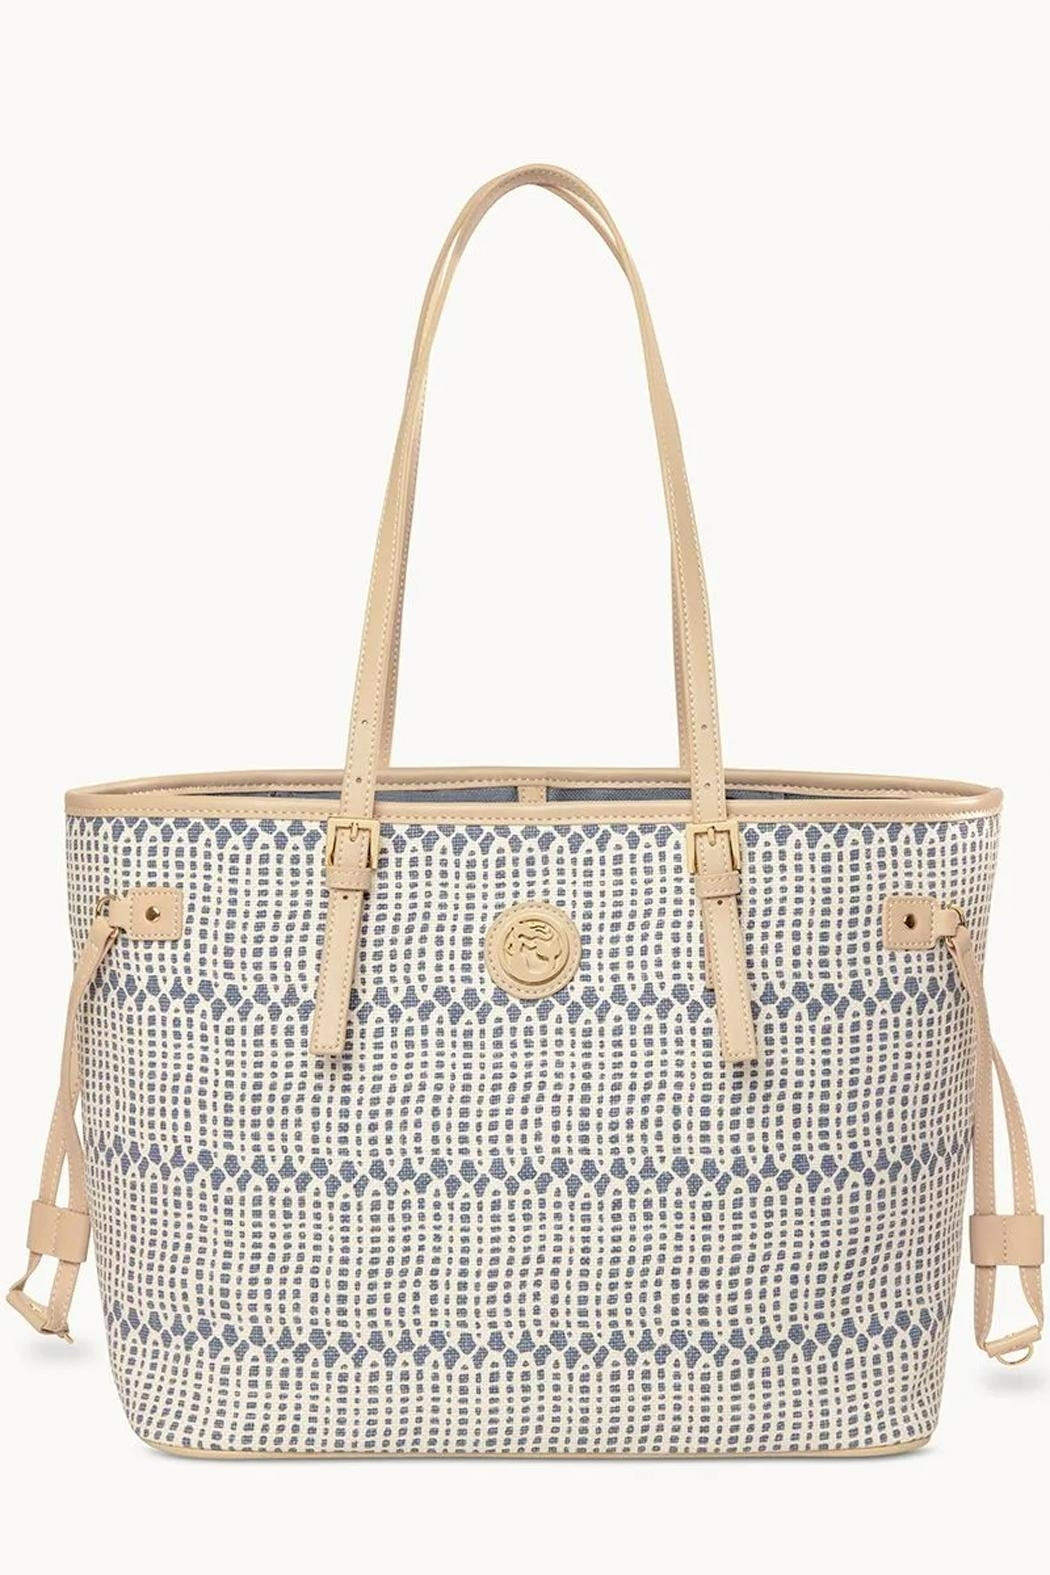 Spartina 449 Songbird Jetsetter Tote - Main Image